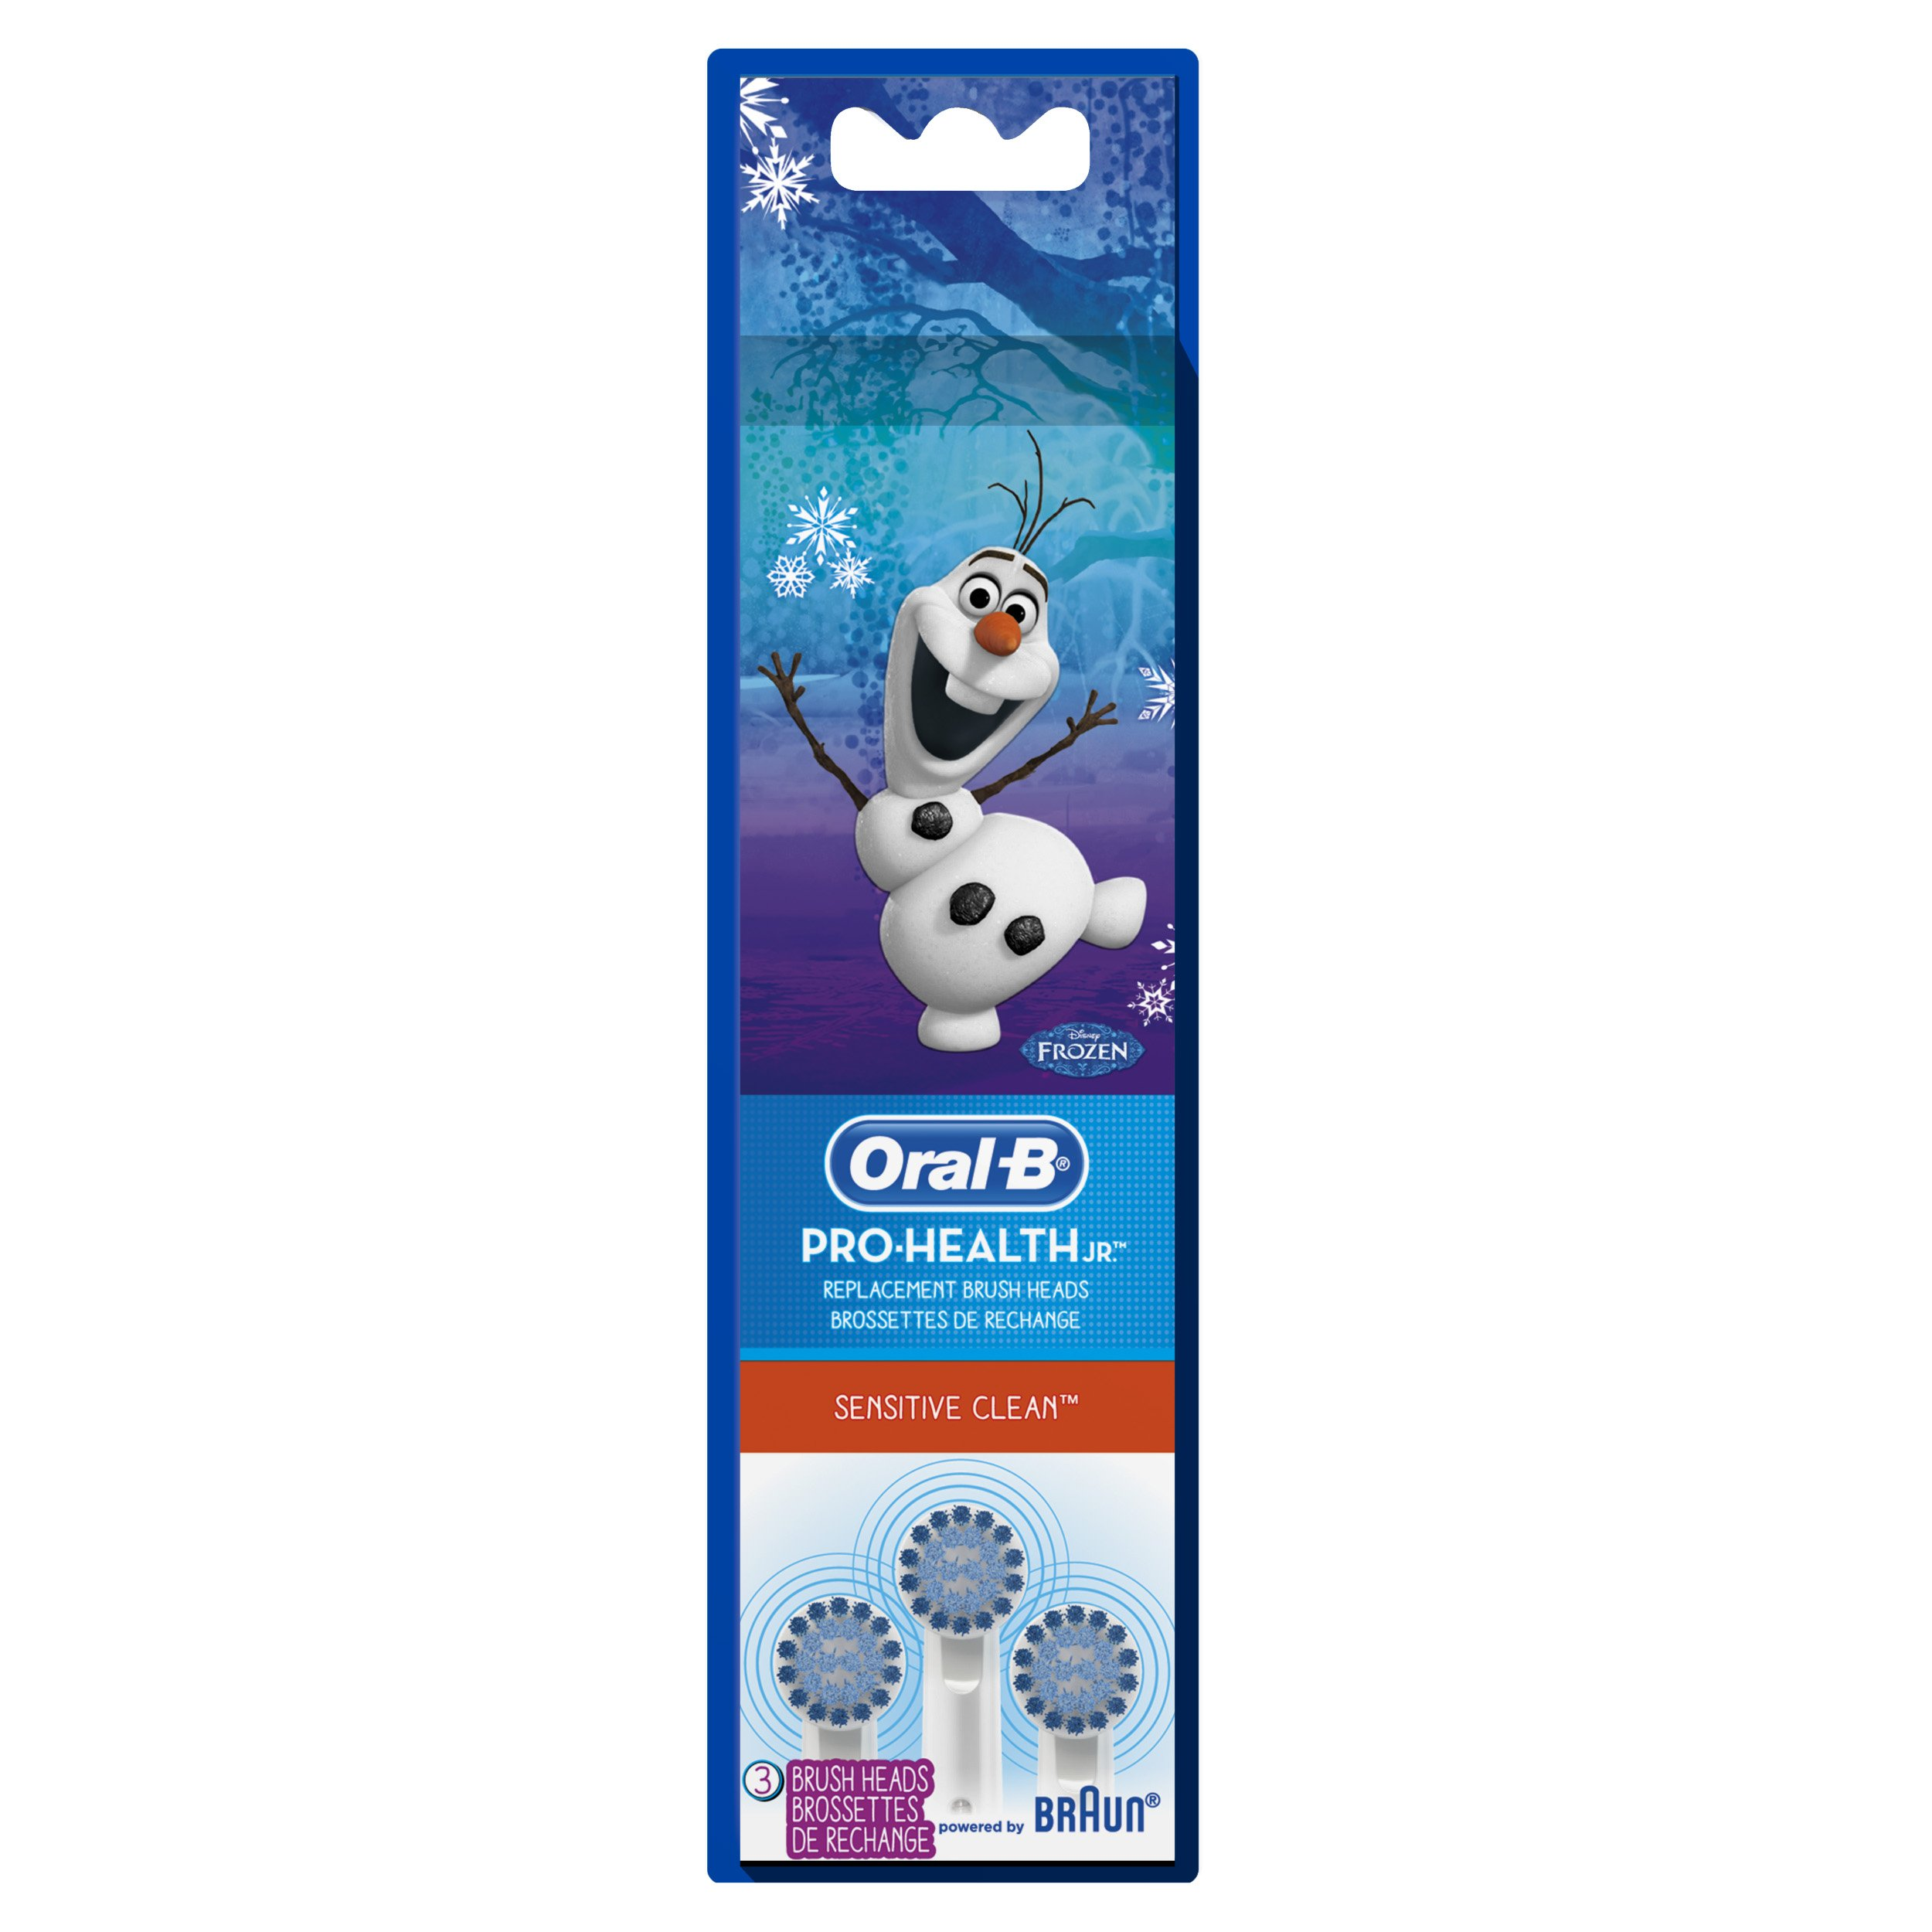 Oral-B Pro-Health Jr. Disney Frozen Kids Electric Toothbrush Replacement Brush Heads Refill, 3 Count by Oral-B